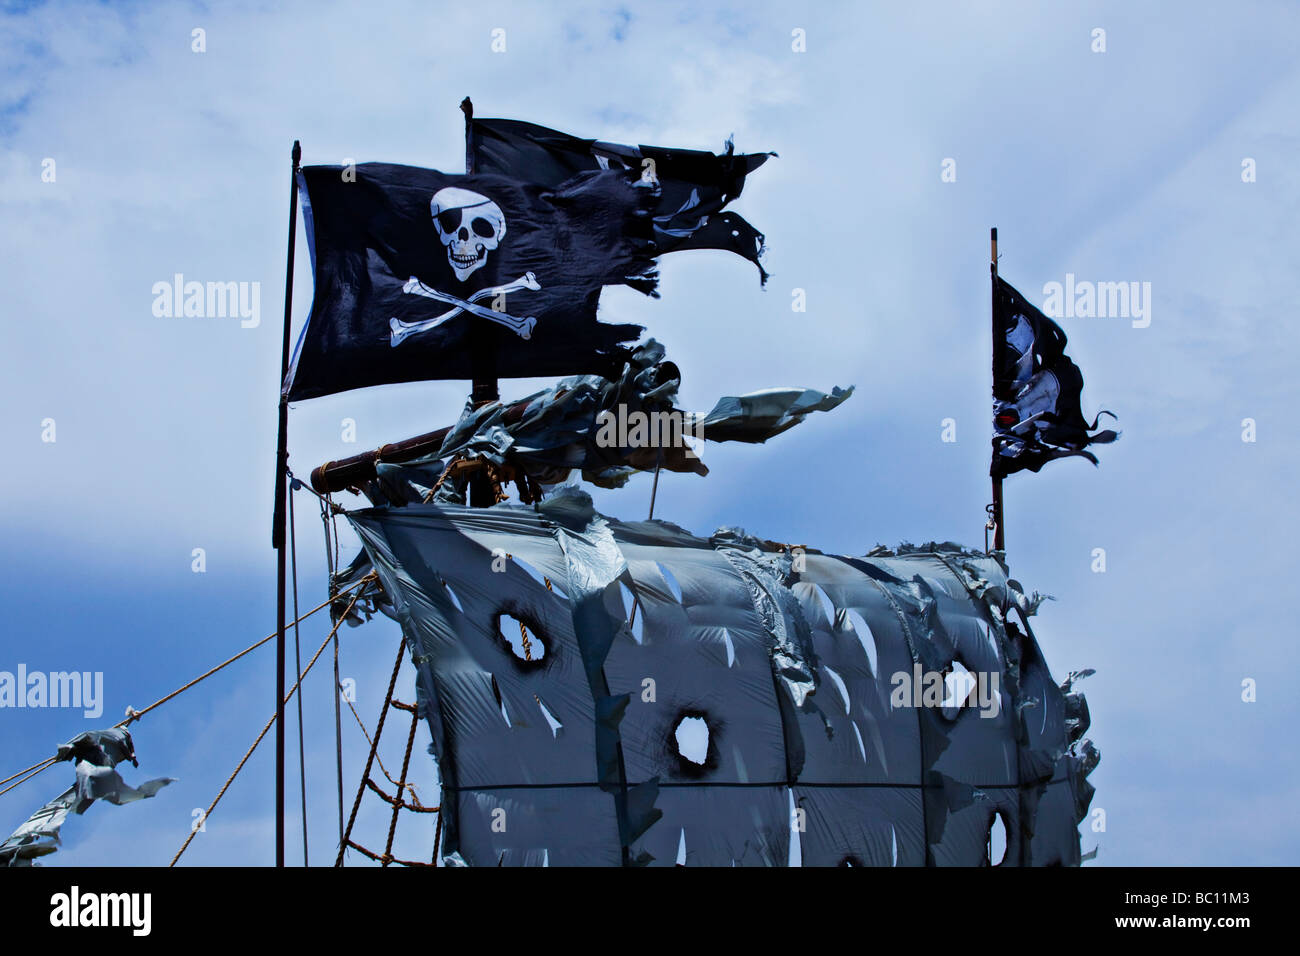 pirate flags above tattered sails - Stock Image